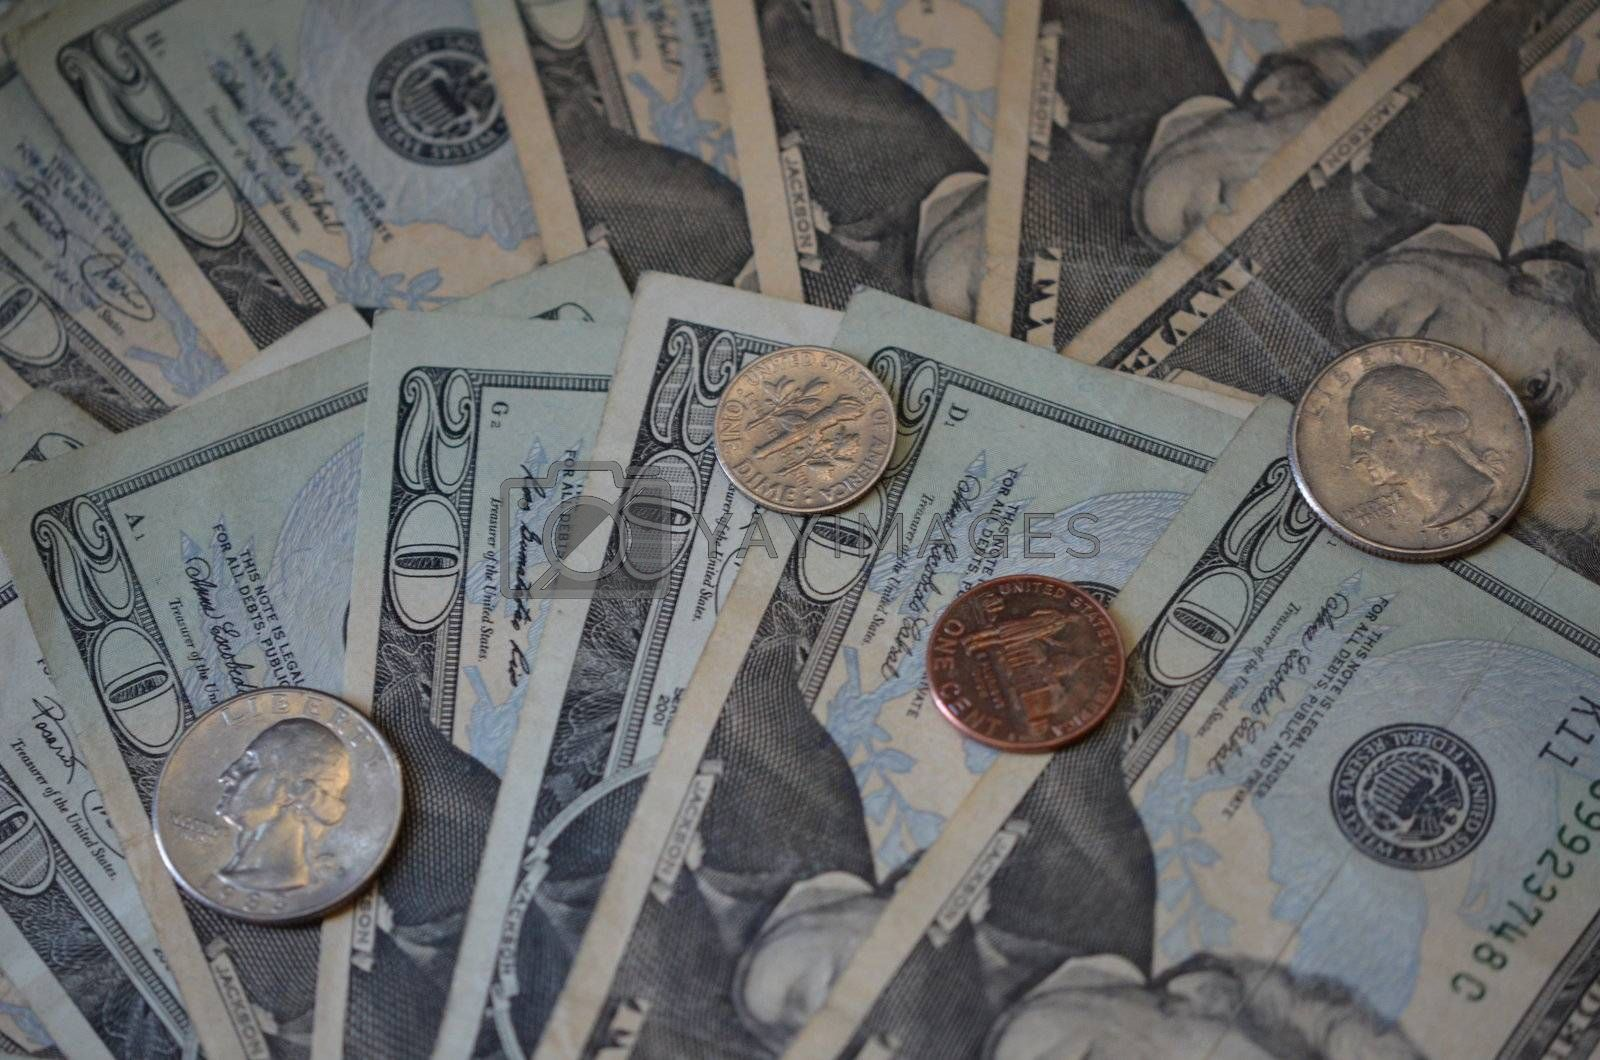 small bills and change in US currency